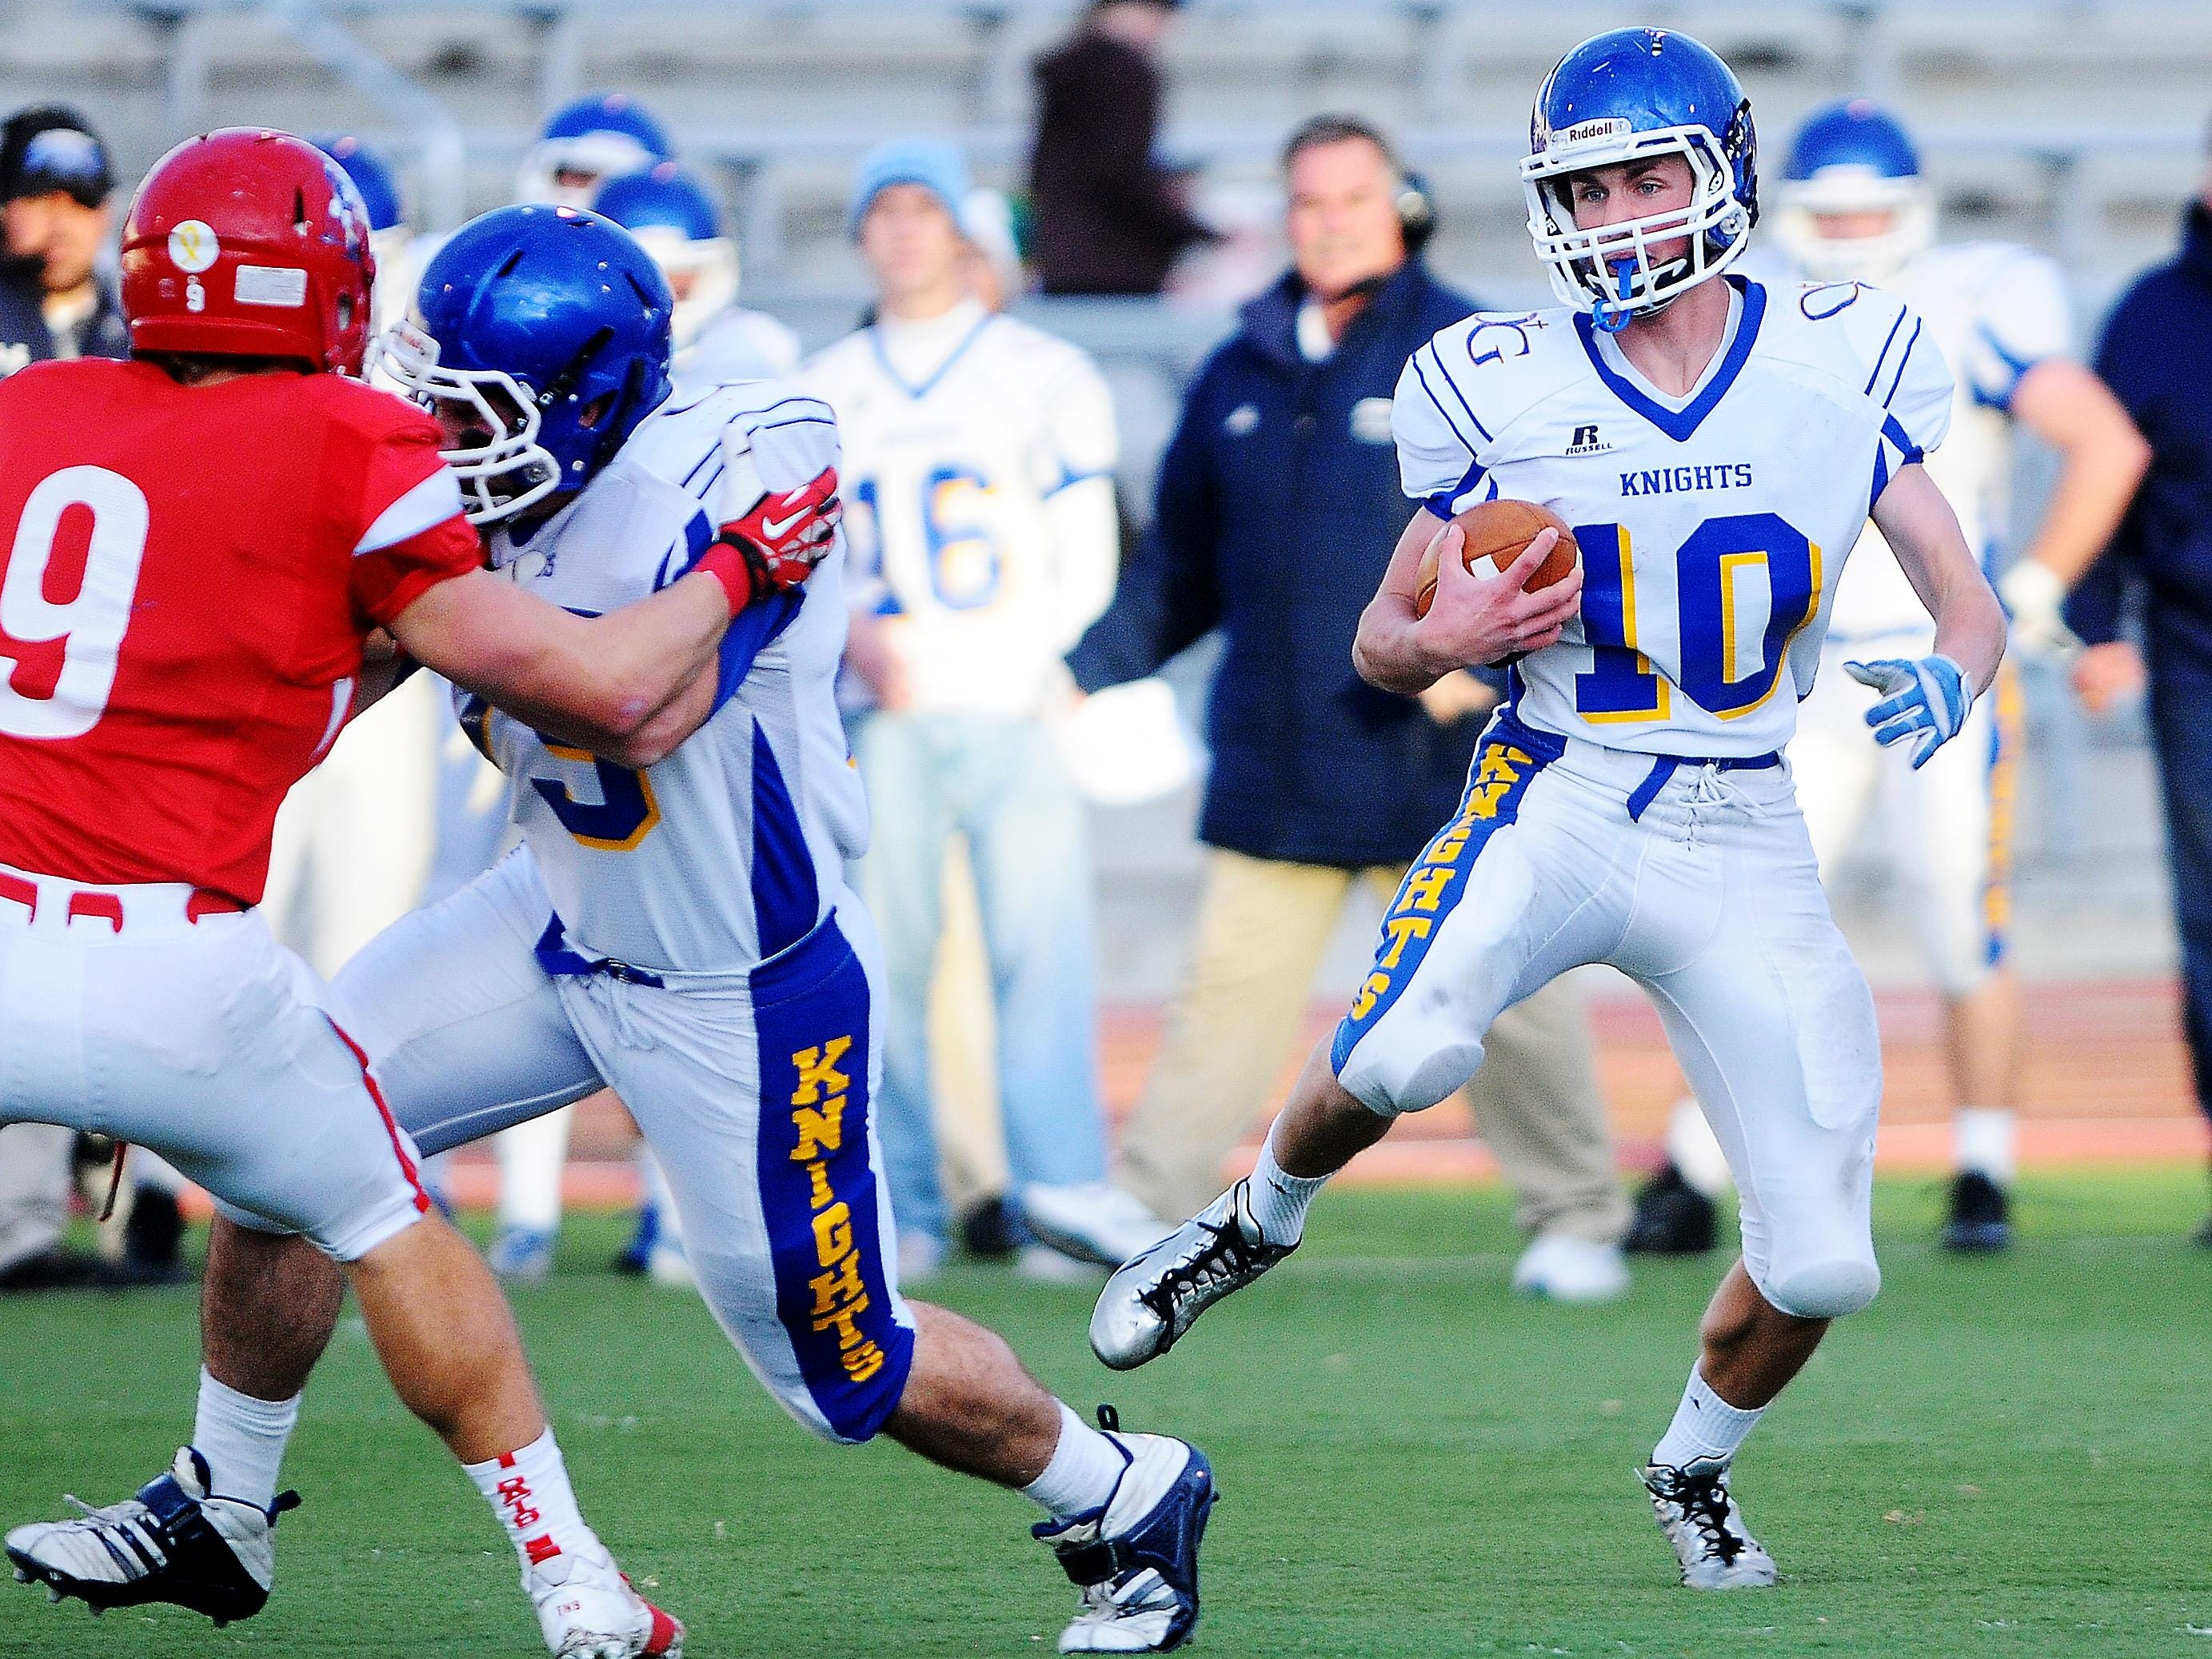 O'Gorman's QB-DB Luke Fritsch is one player who rarely comes off the field.